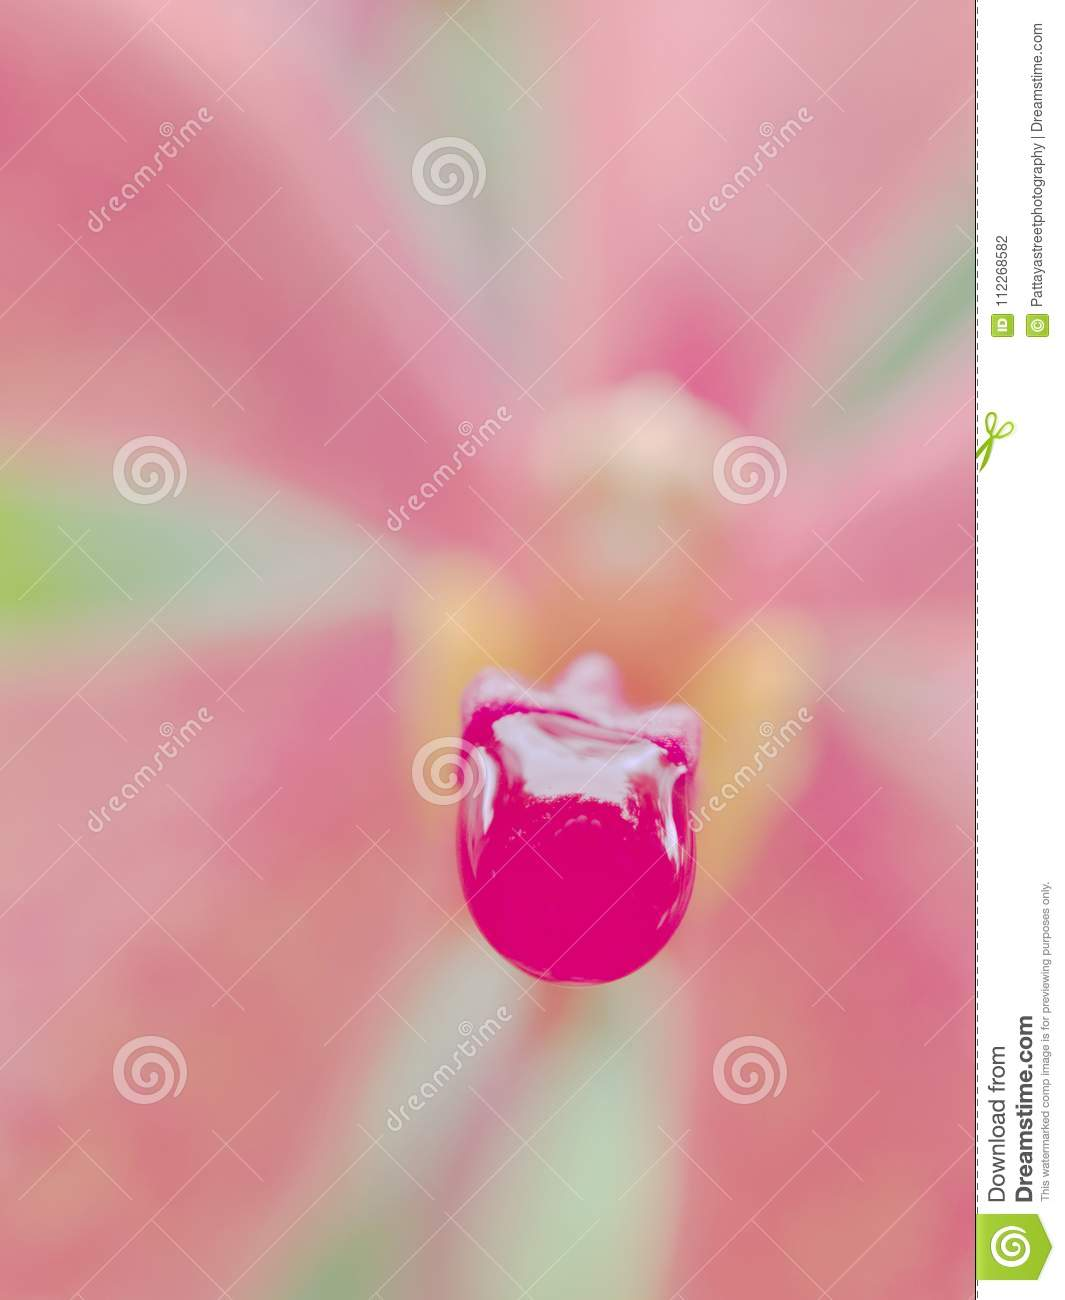 Rain drop on lip of pink orchid flower over blurred column, petals and sepals background